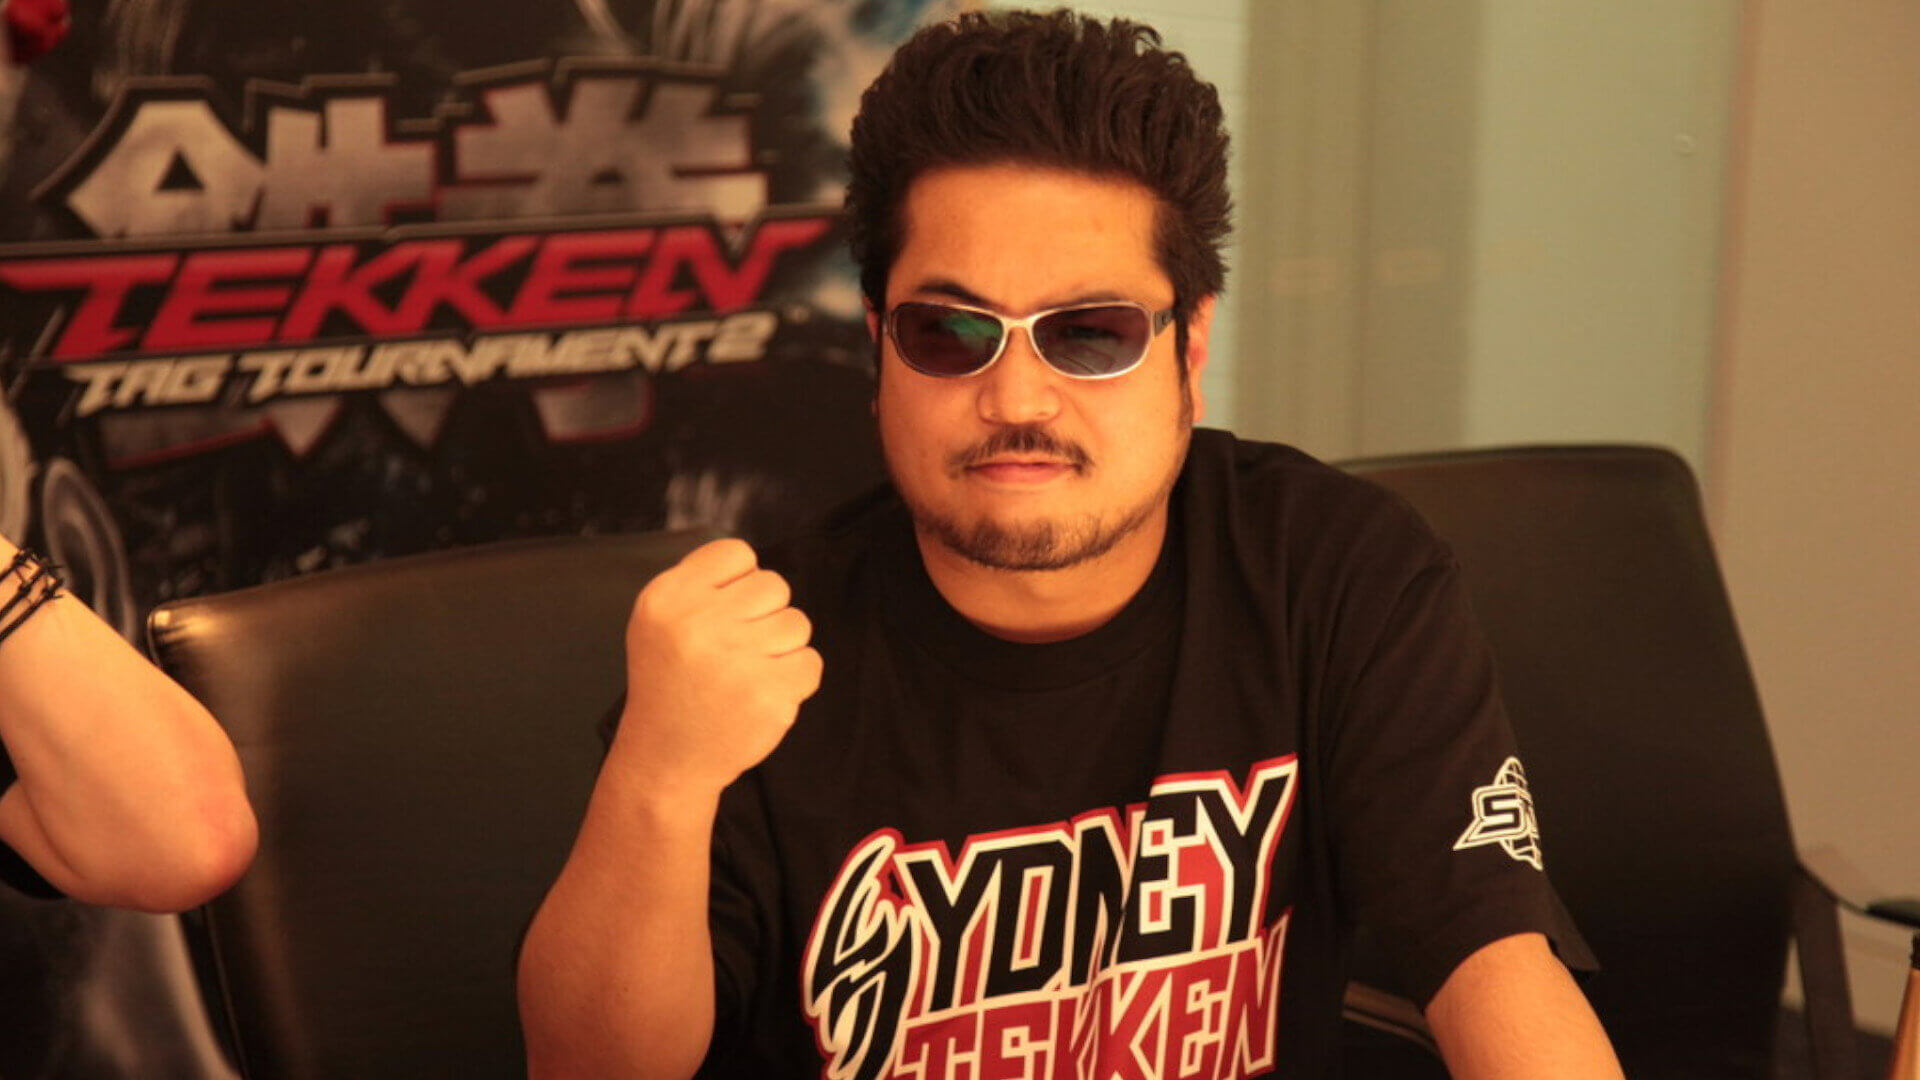 Harada wants to create a joint fighting games world championship